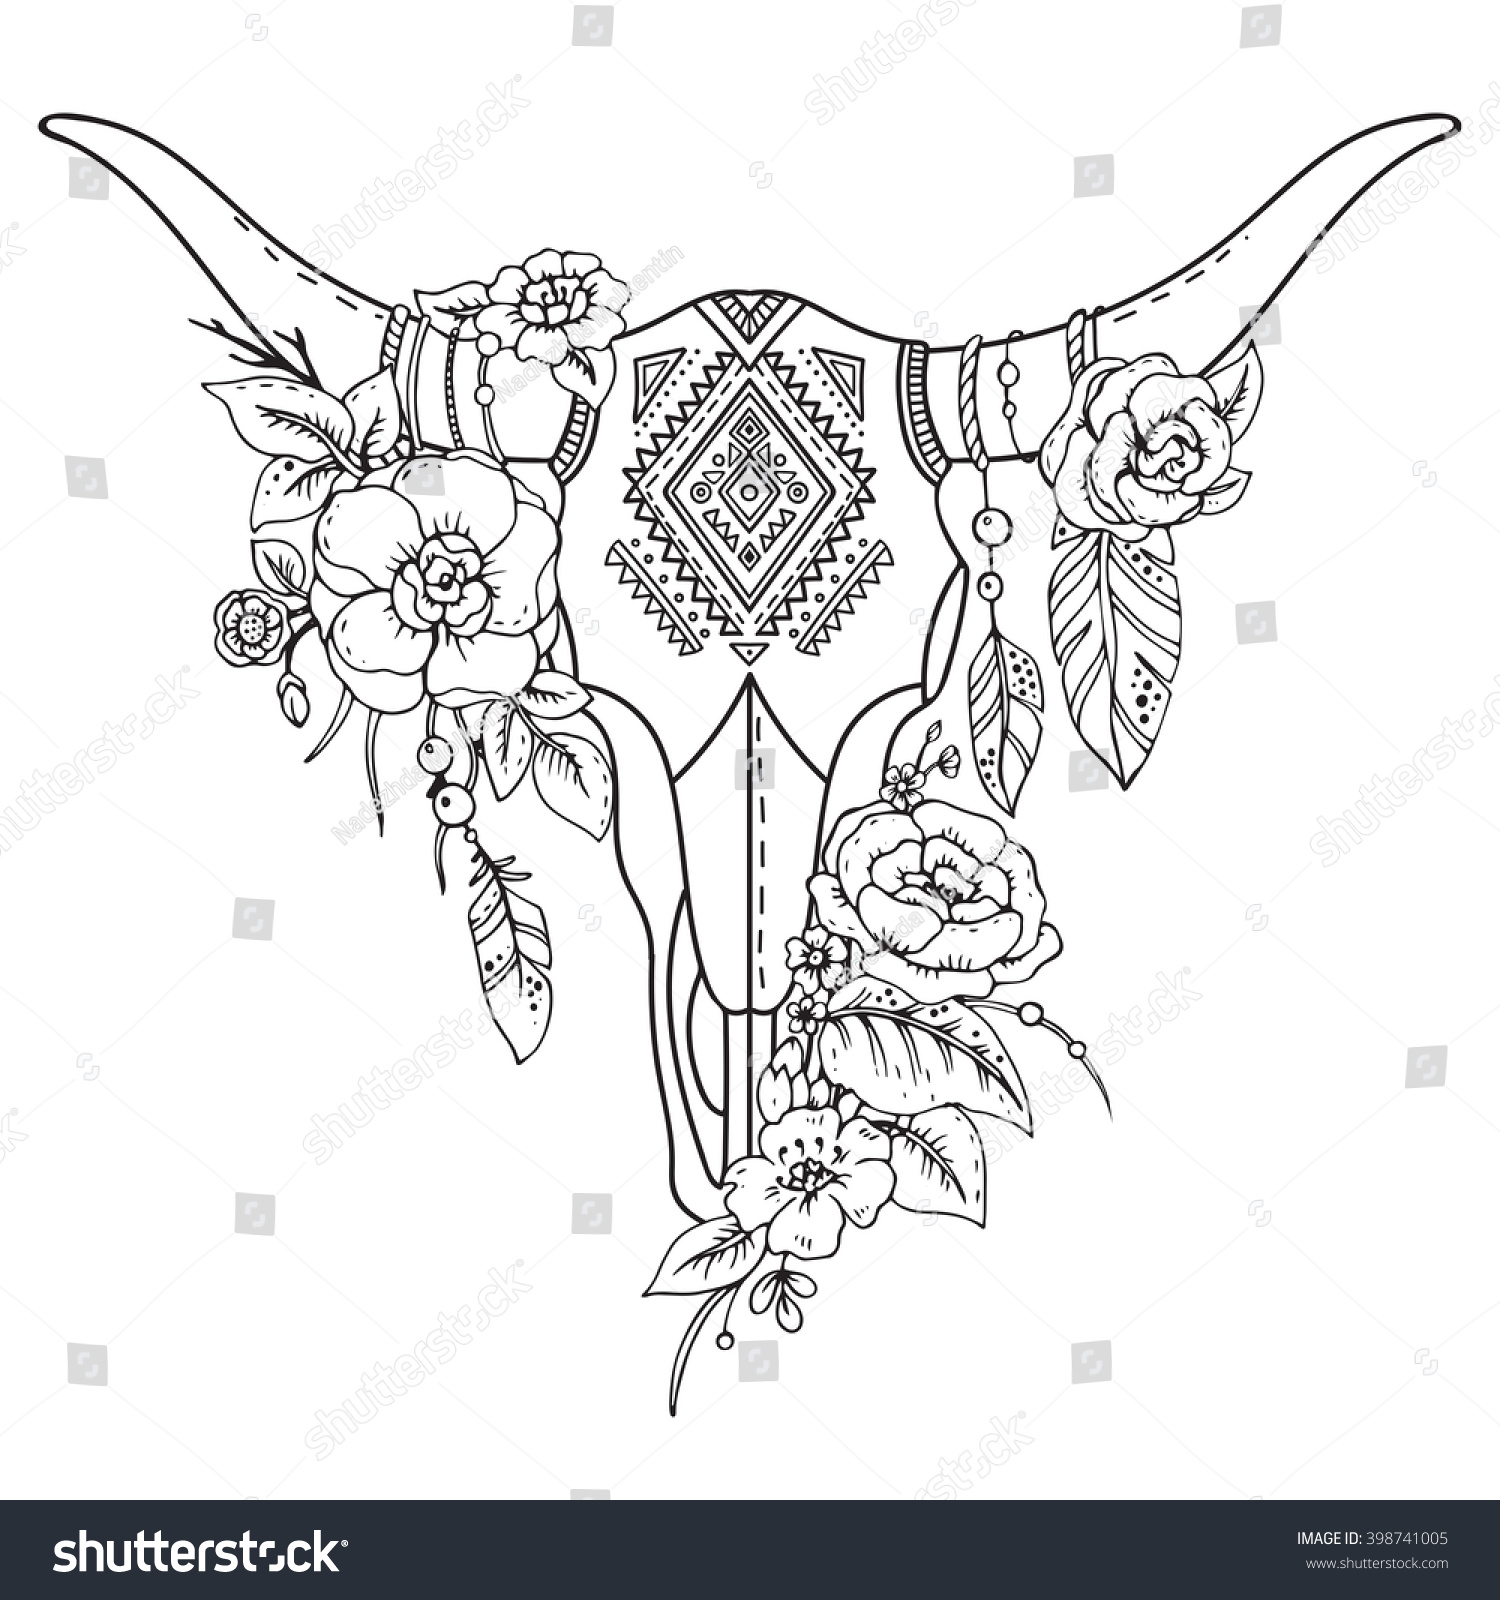 Decorative Indian Bull Skull With Ethnic Ornament Feathers Flowers And Leaves Hand Drawn